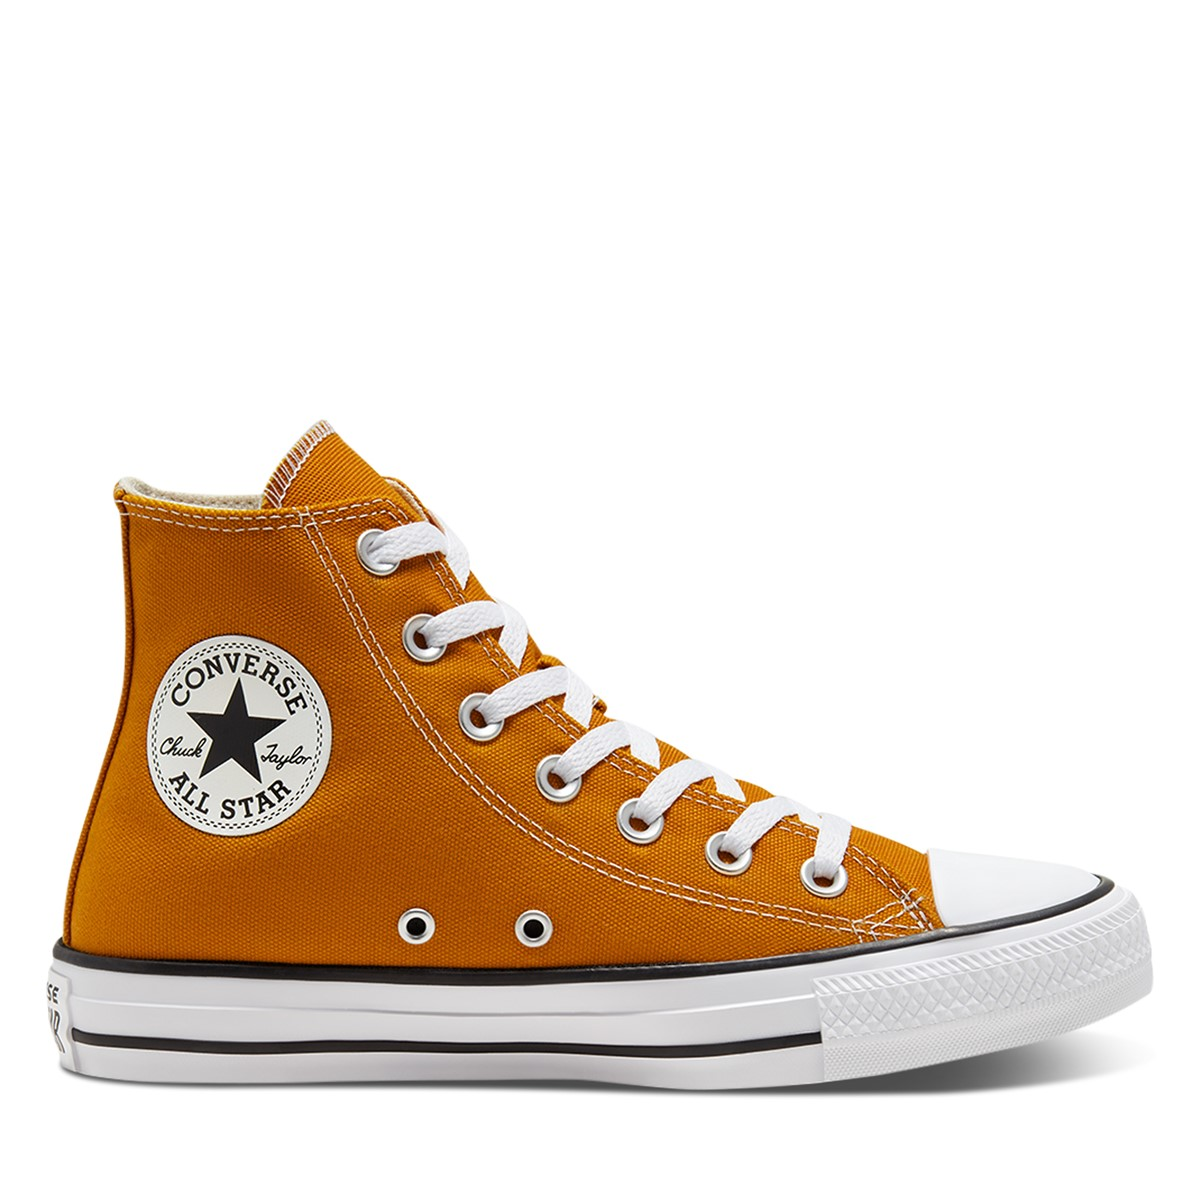 Women's Chuck Taylor Hi Sneakers in Orange